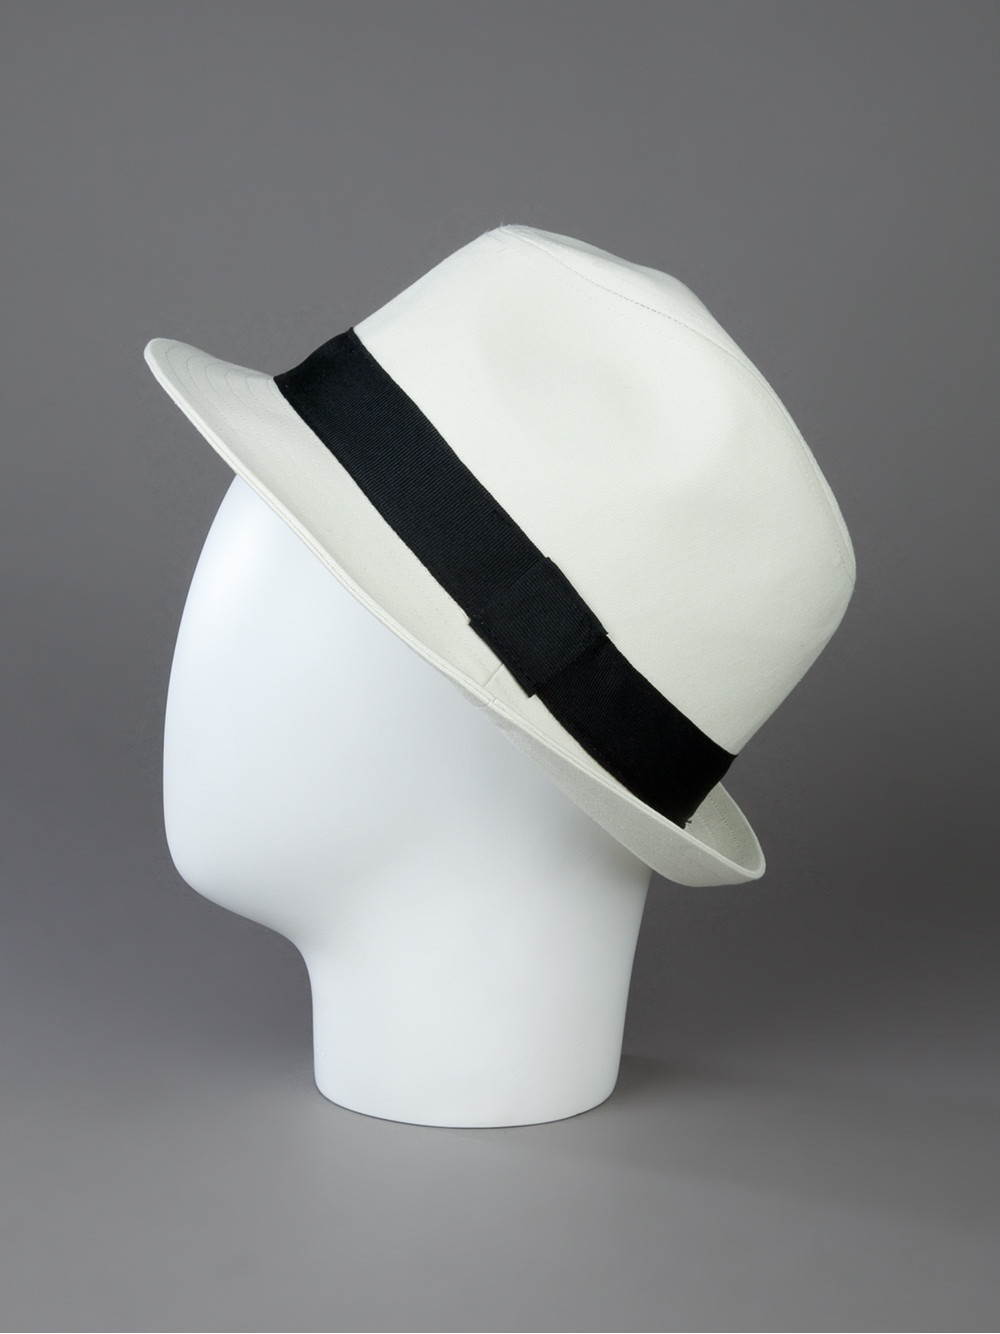 Ralph Lauren Trilby Hat in White for Men - Lyst 961647b29a7